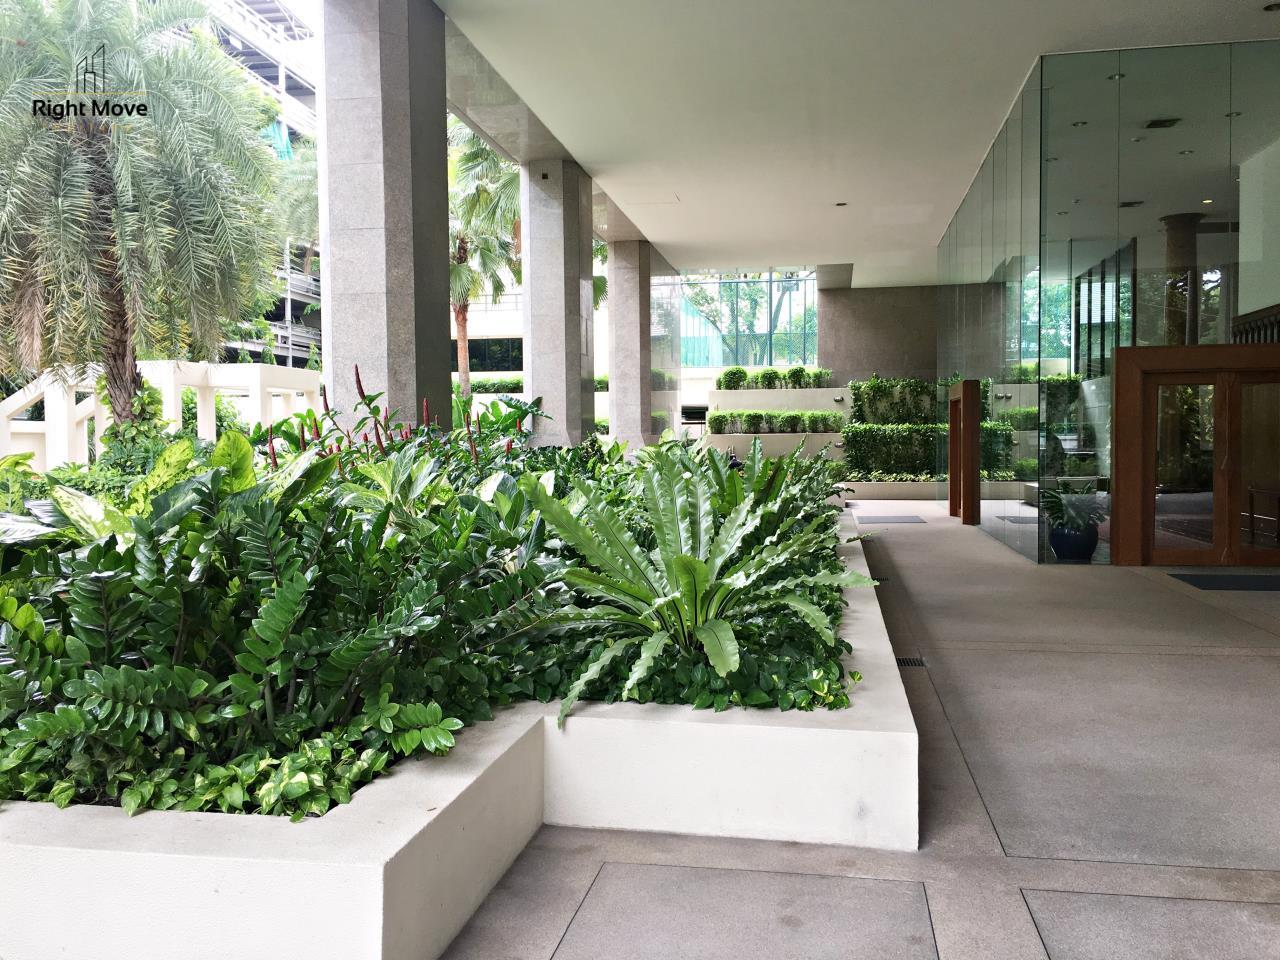 Right Move Thailand Agency's CA5243 Somkid Gardens For Rent 120,000 THB 4 Bedrooms 250 Sqm 23